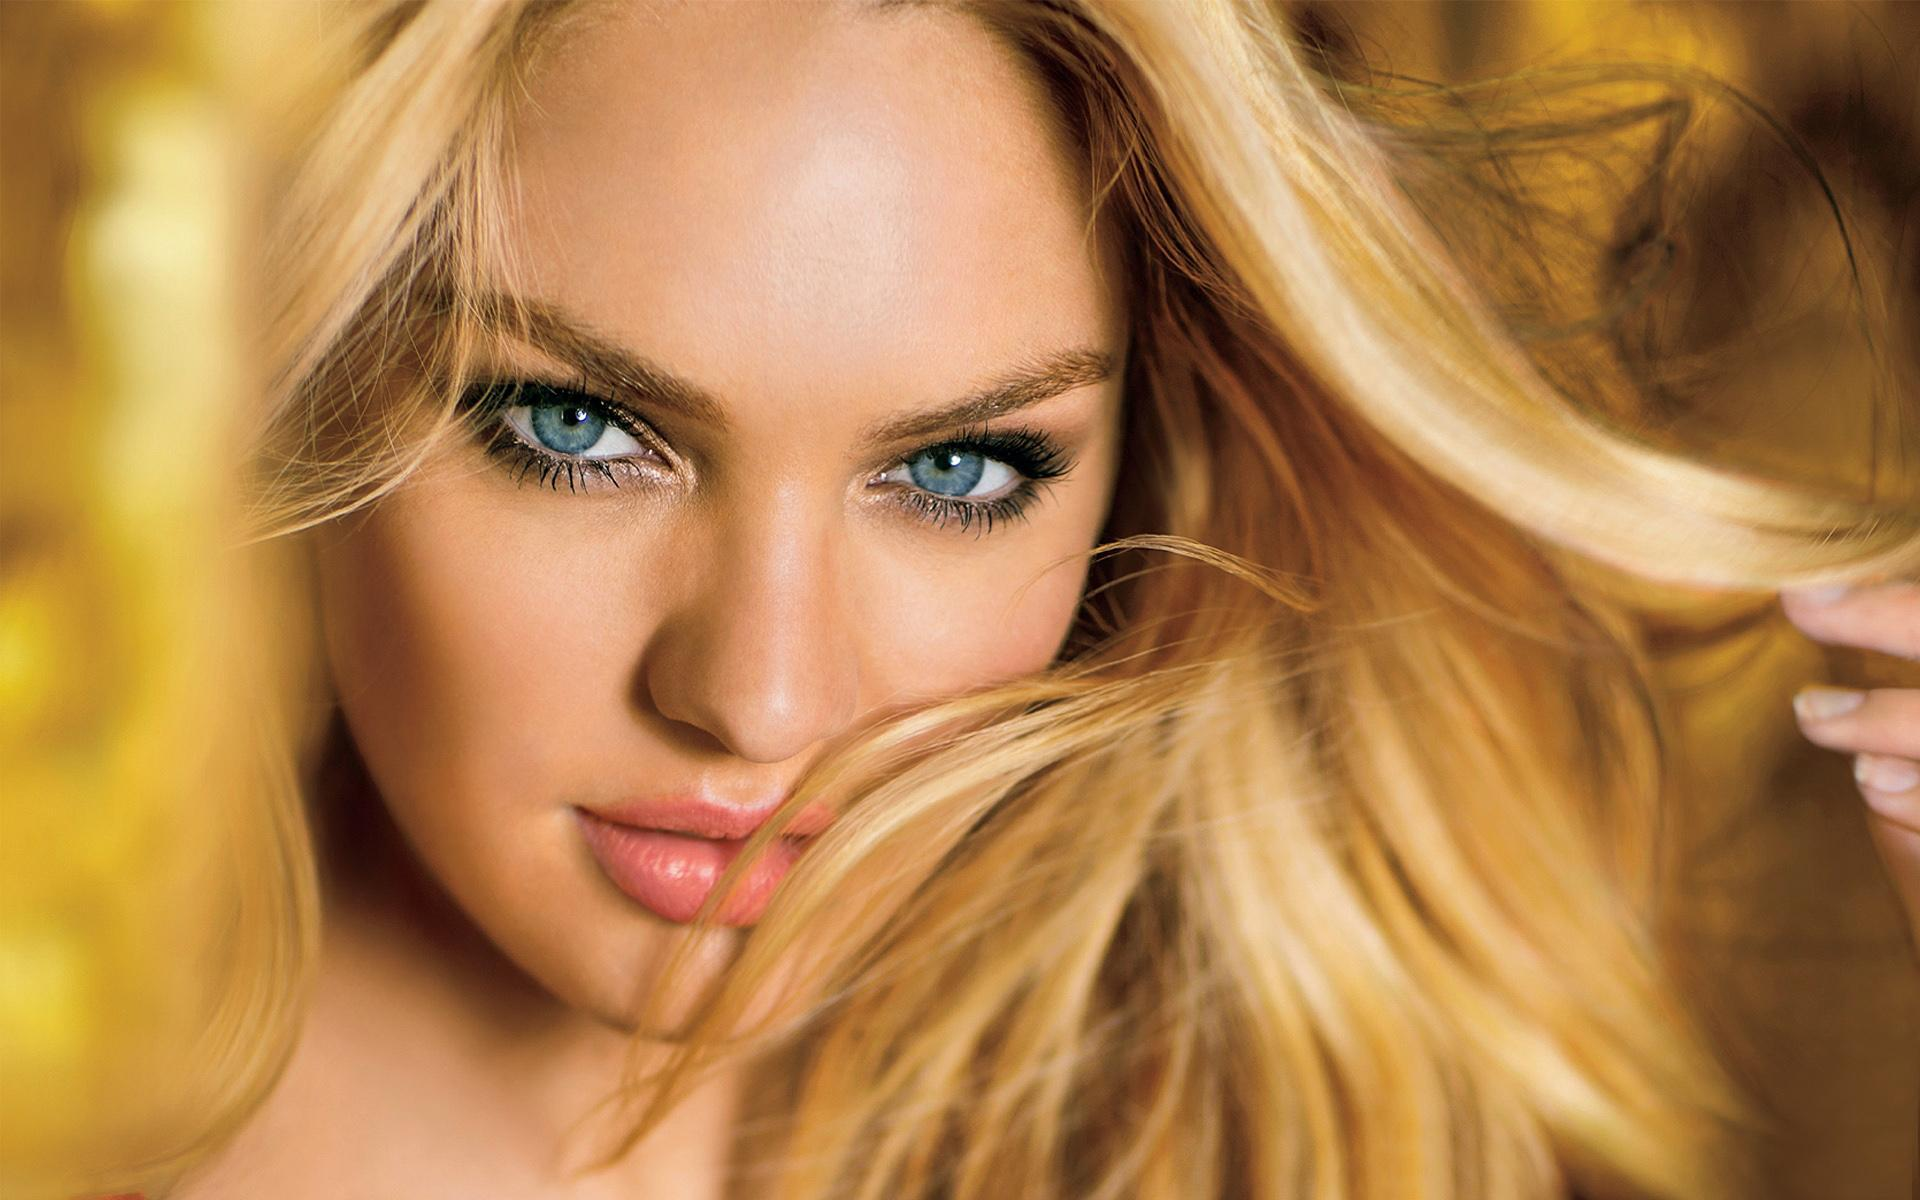 Candice Swanepoel Wallpaper Photo - Candice Swanepoel Net Worth, Pics, Wallpapers, Career and Biography